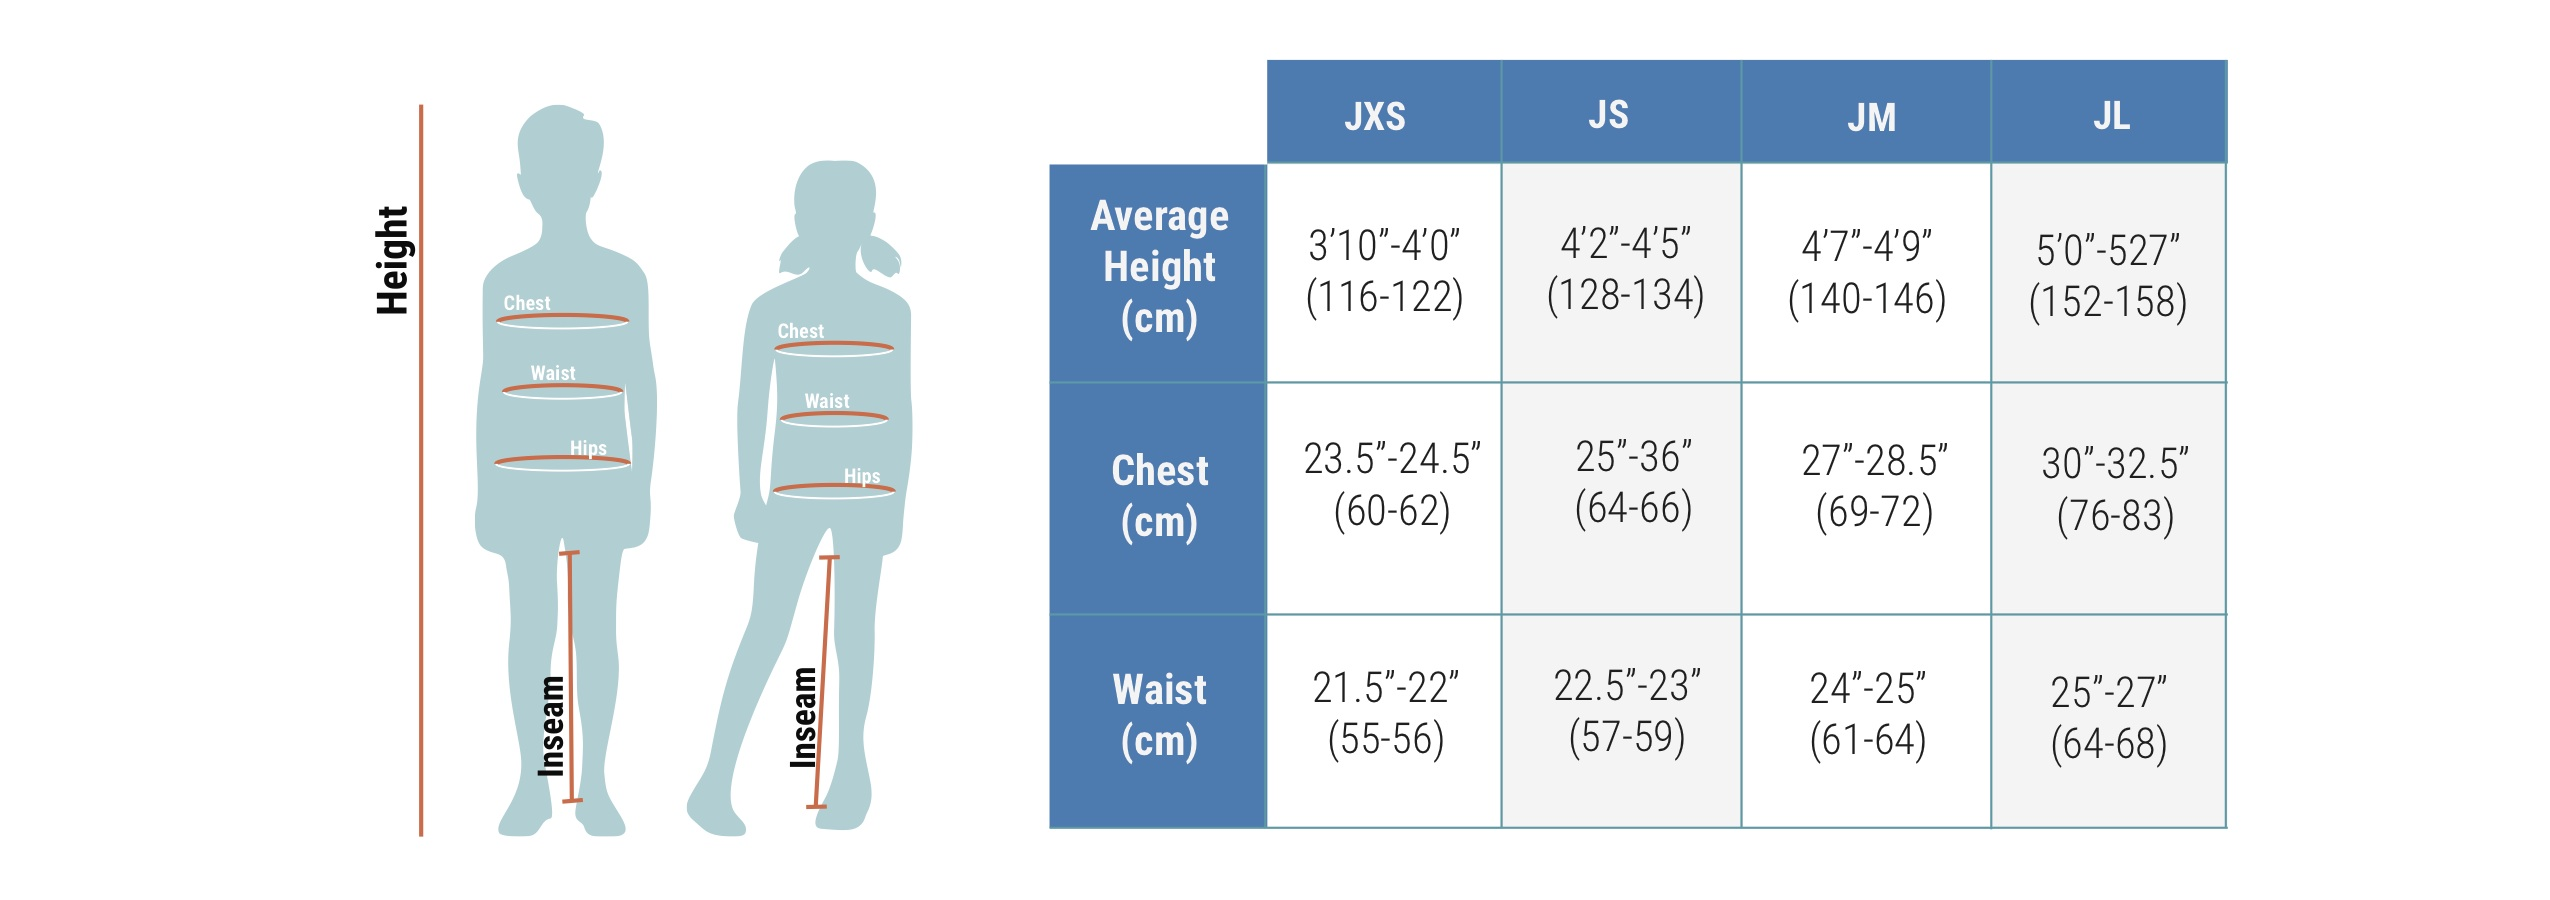 fwg-junior-gill-sizing-chart.jpg